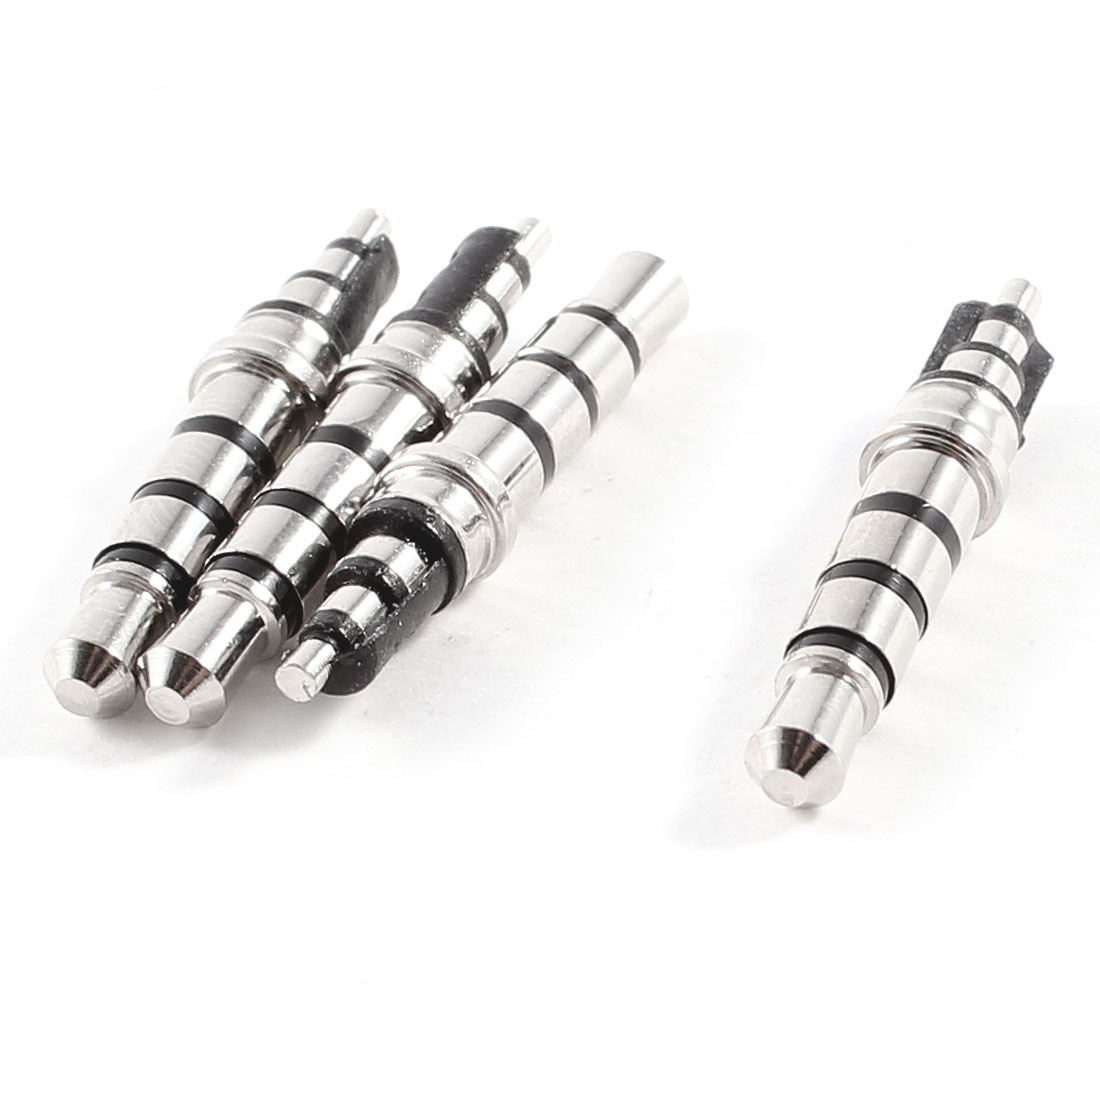 4pcs 3.5mm x 4.5mm x 24mm 4 Pole Male Connector Headphone Soldering Jack Silver Tone